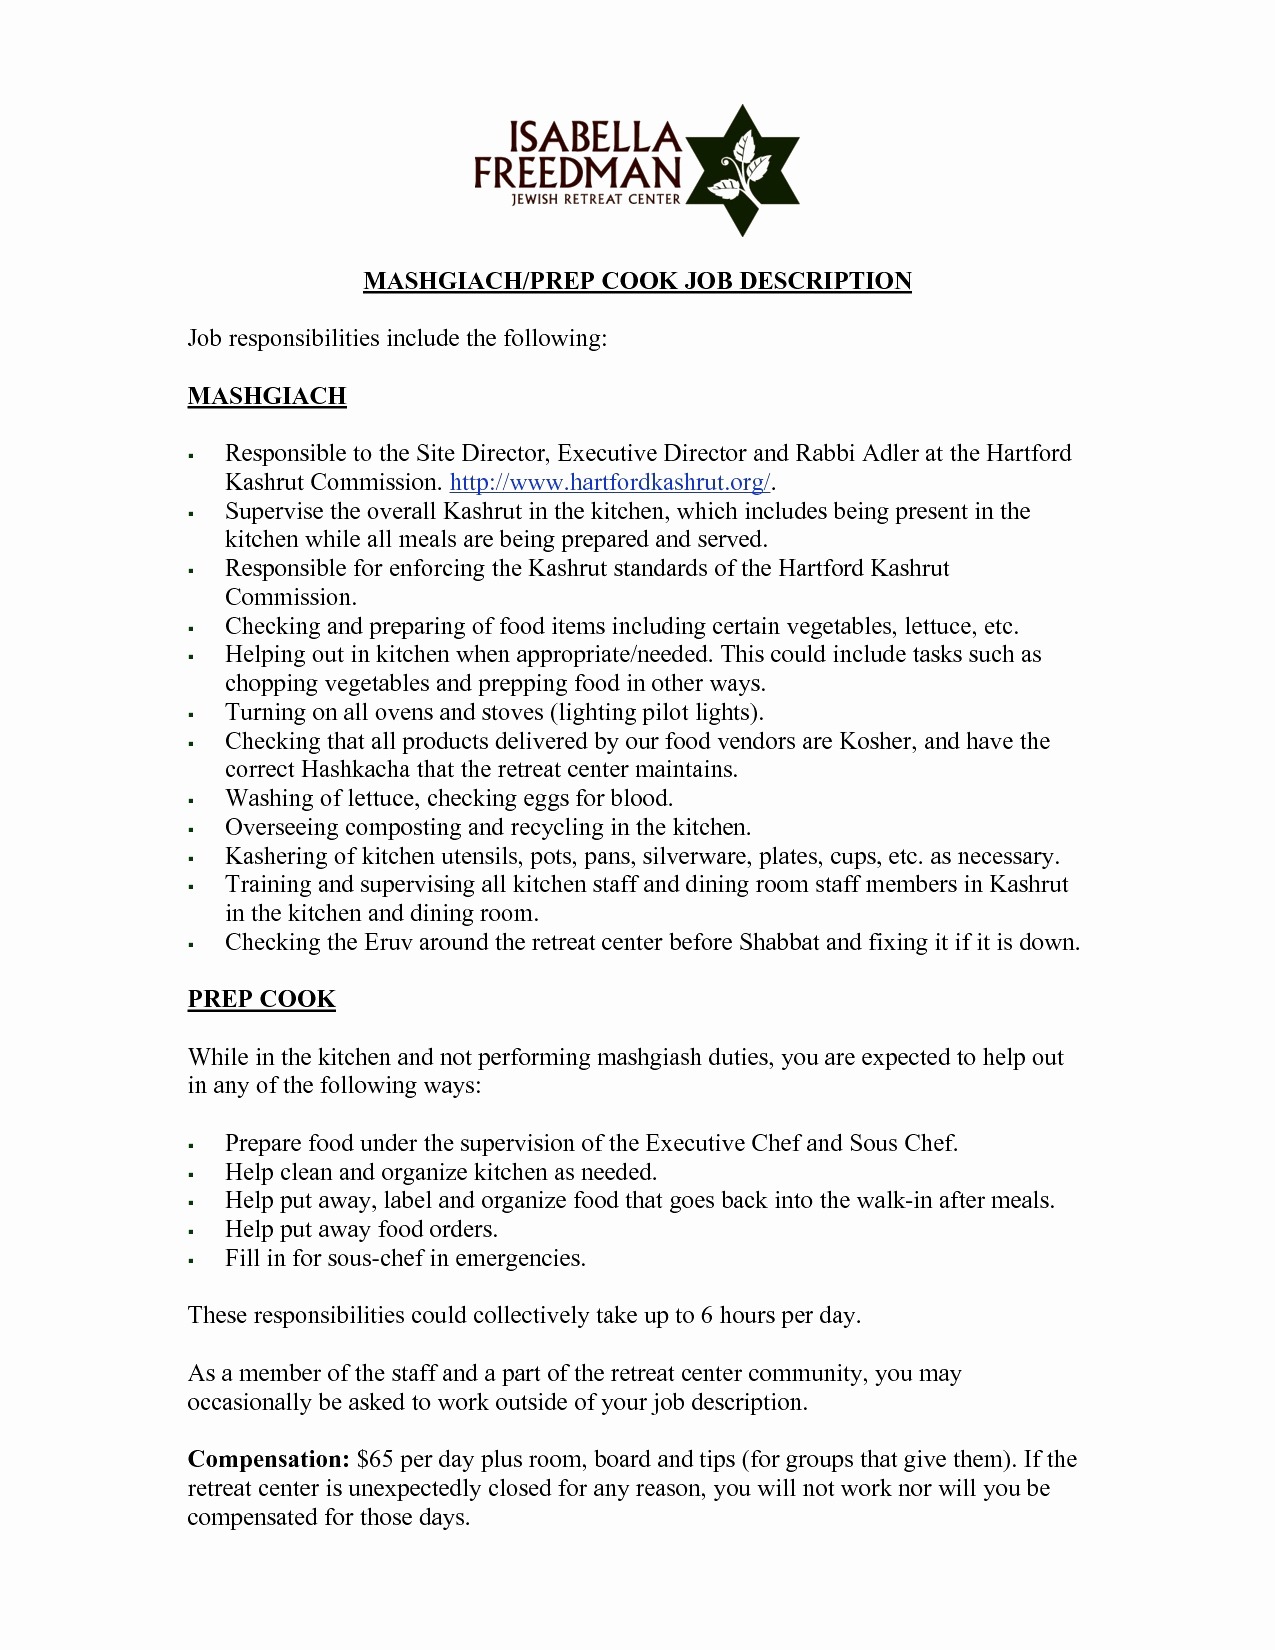 Help Desk Cover Letter Template - Example Resume Cover Letter Lovely Od Specialist Sample Resume Wind